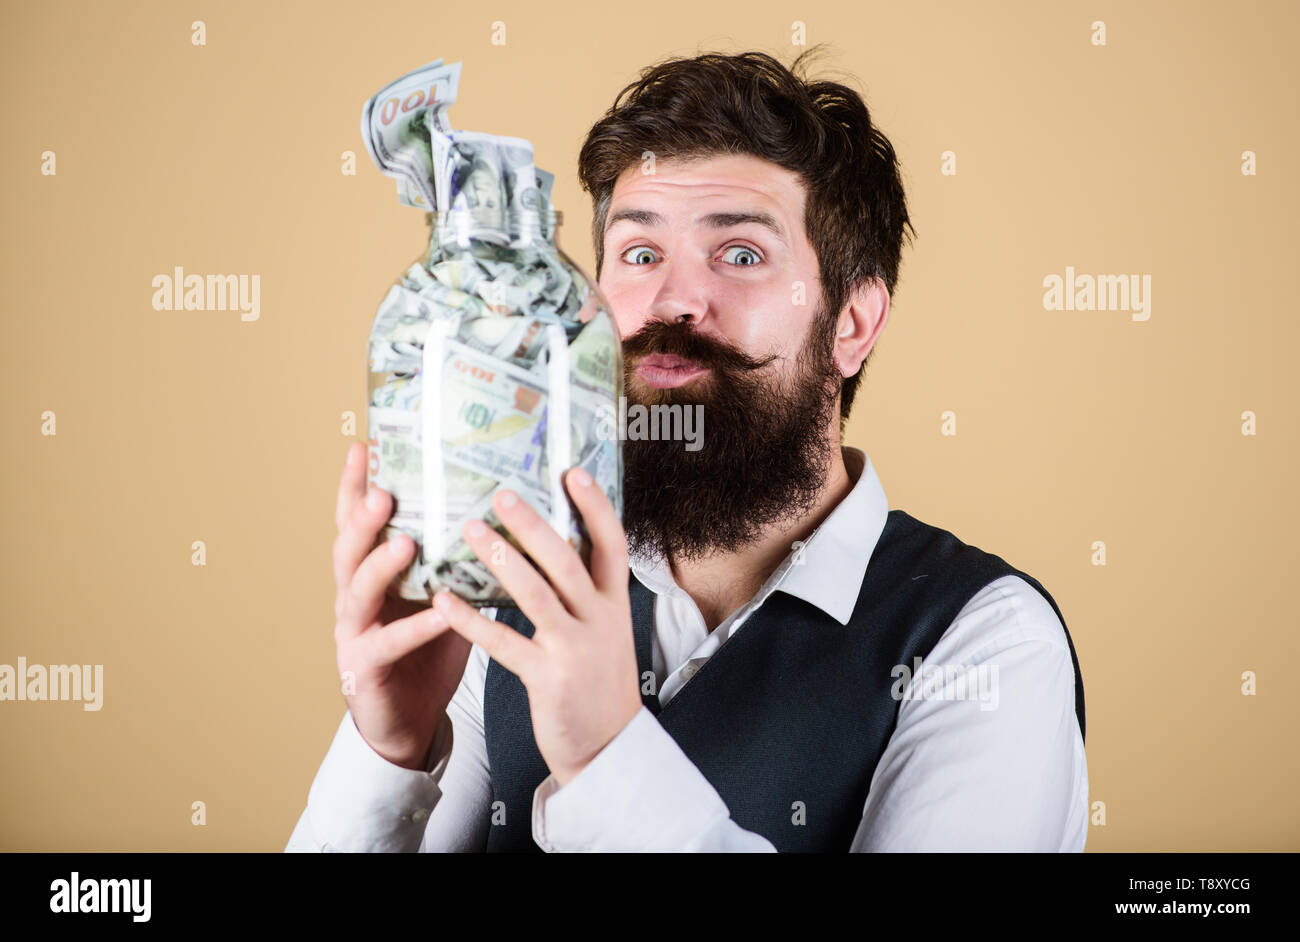 Keeping money in saving bank. Bearded man holding glass jar with paper bank notes. My money going directly into the piggy bank. Bank and banking. Stock Photo